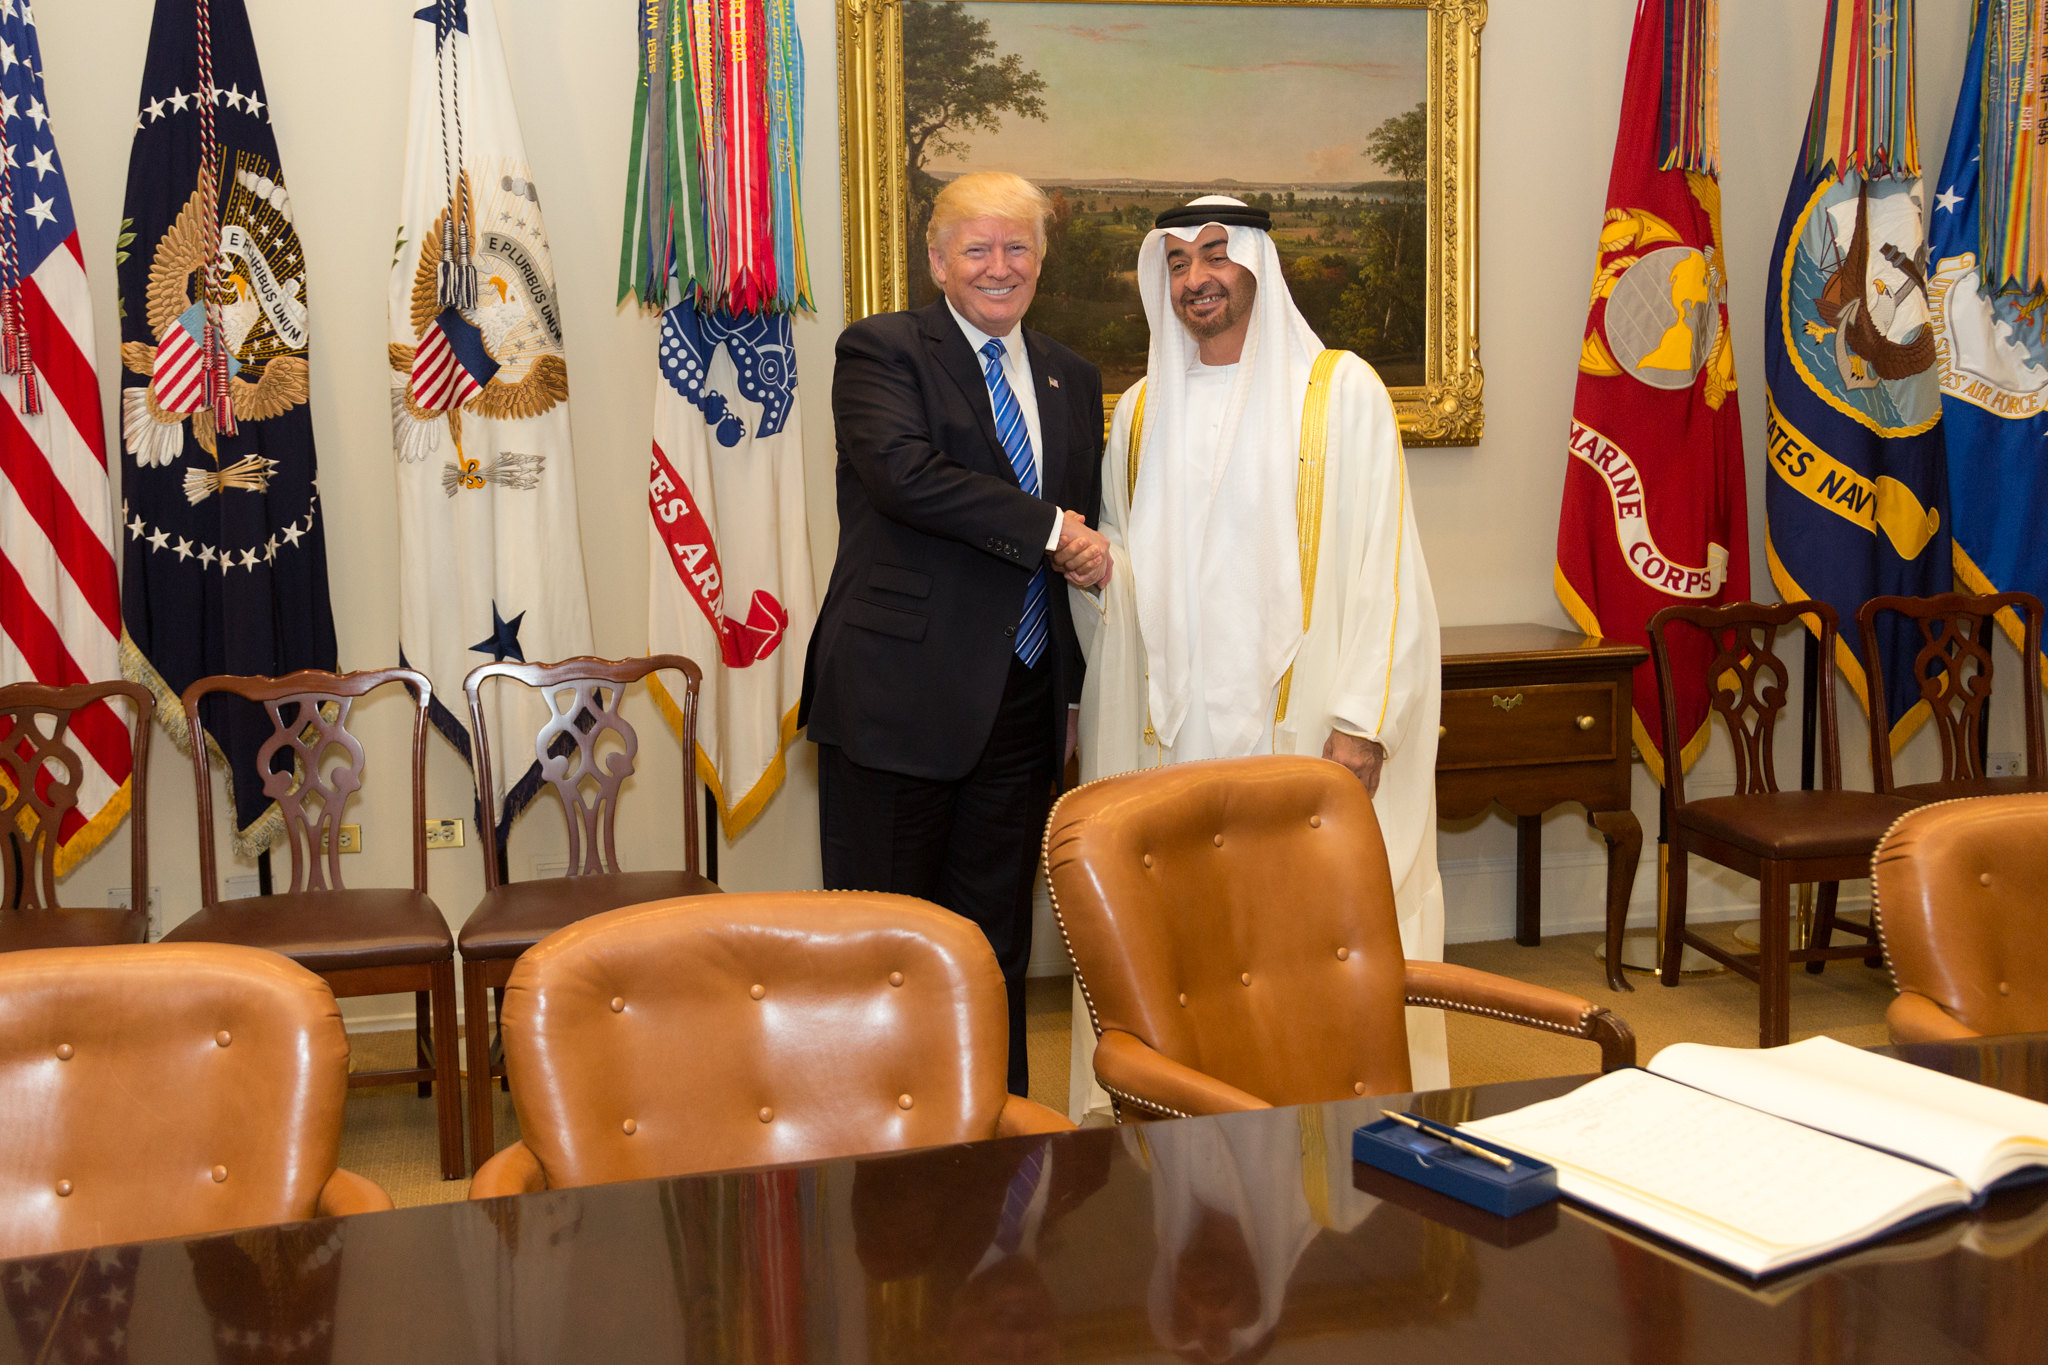 U.S. President Donald Trump meets with Sheikh Mohammed bin Zayed Al Nahyan